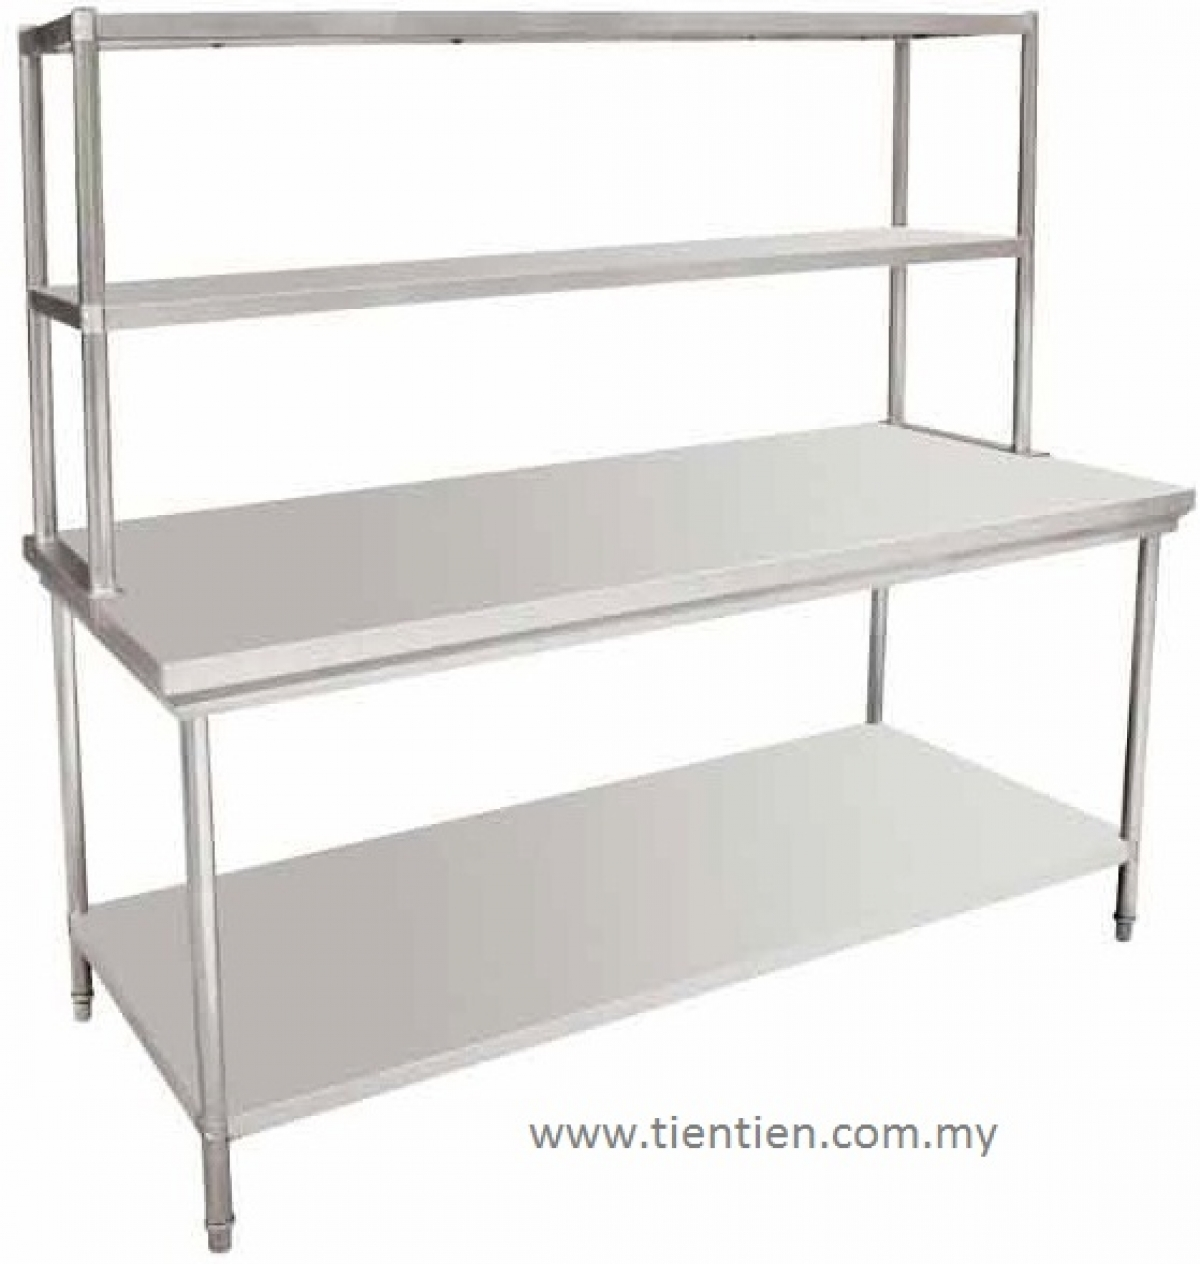 TIEN TIEN Stainless Steel Work Table With Top Shelves BNW - Stainless steel table top shelves